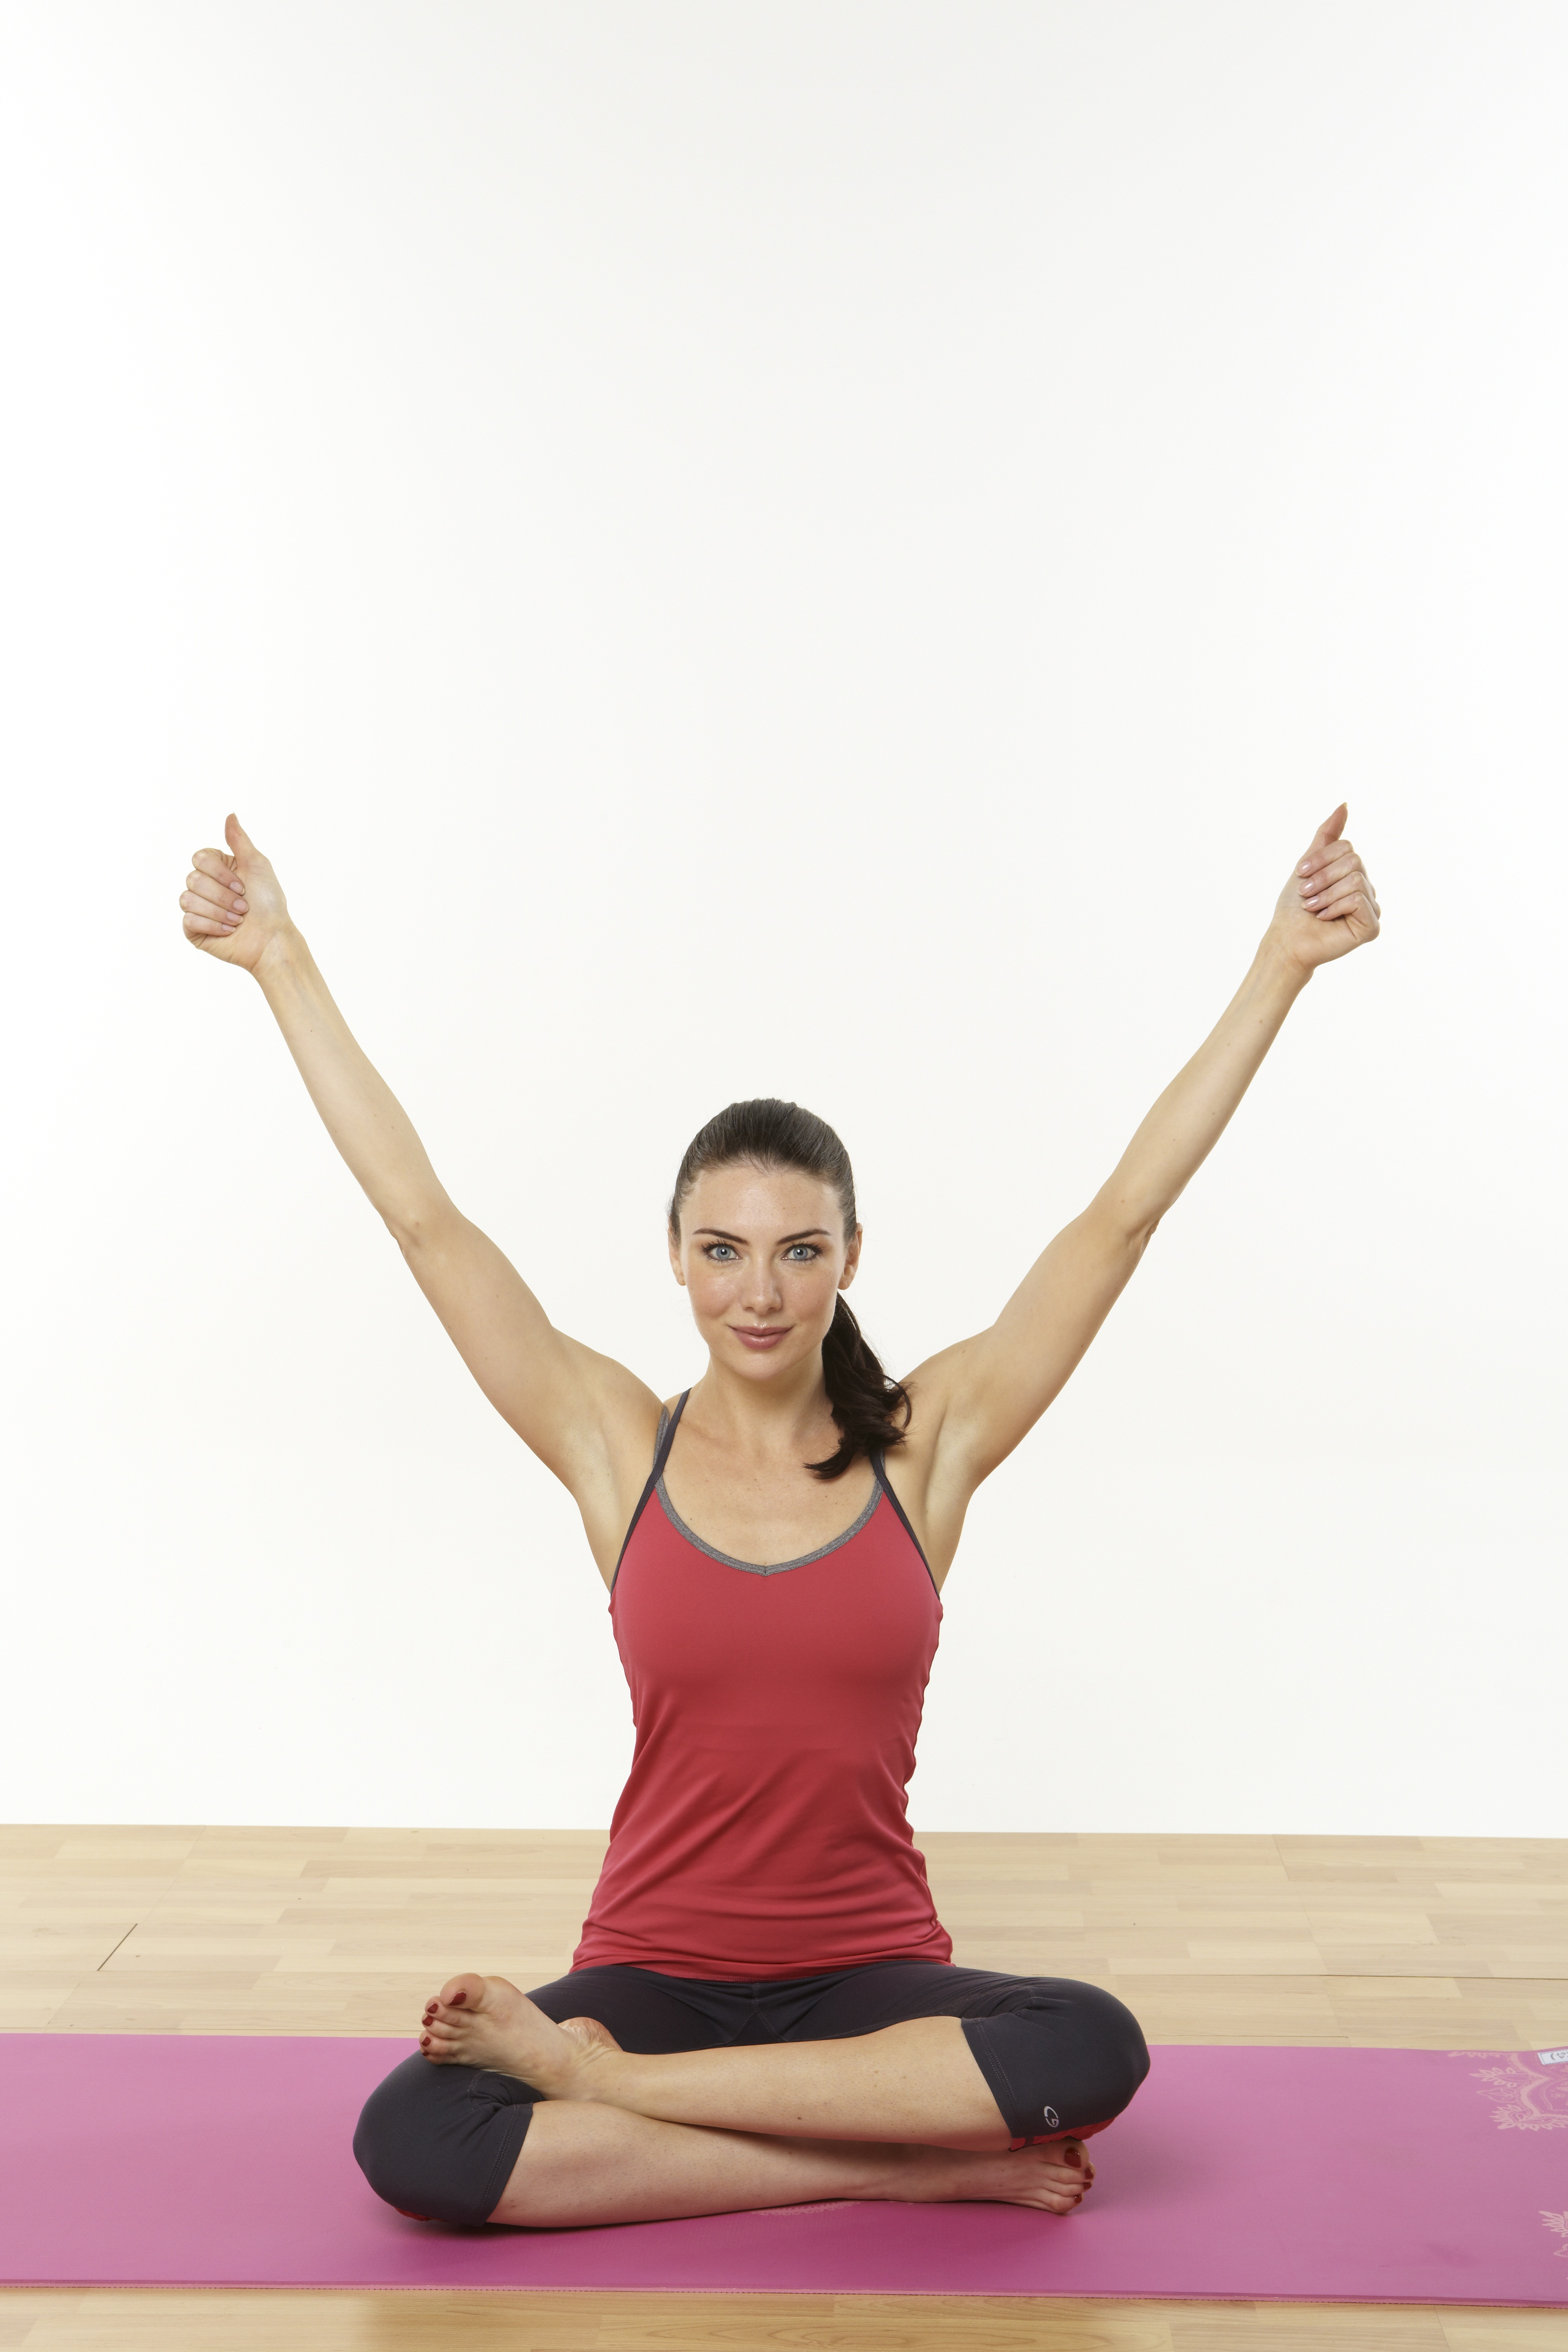 36 Simple Yoga Poses to Energize Your Body and Mind - More